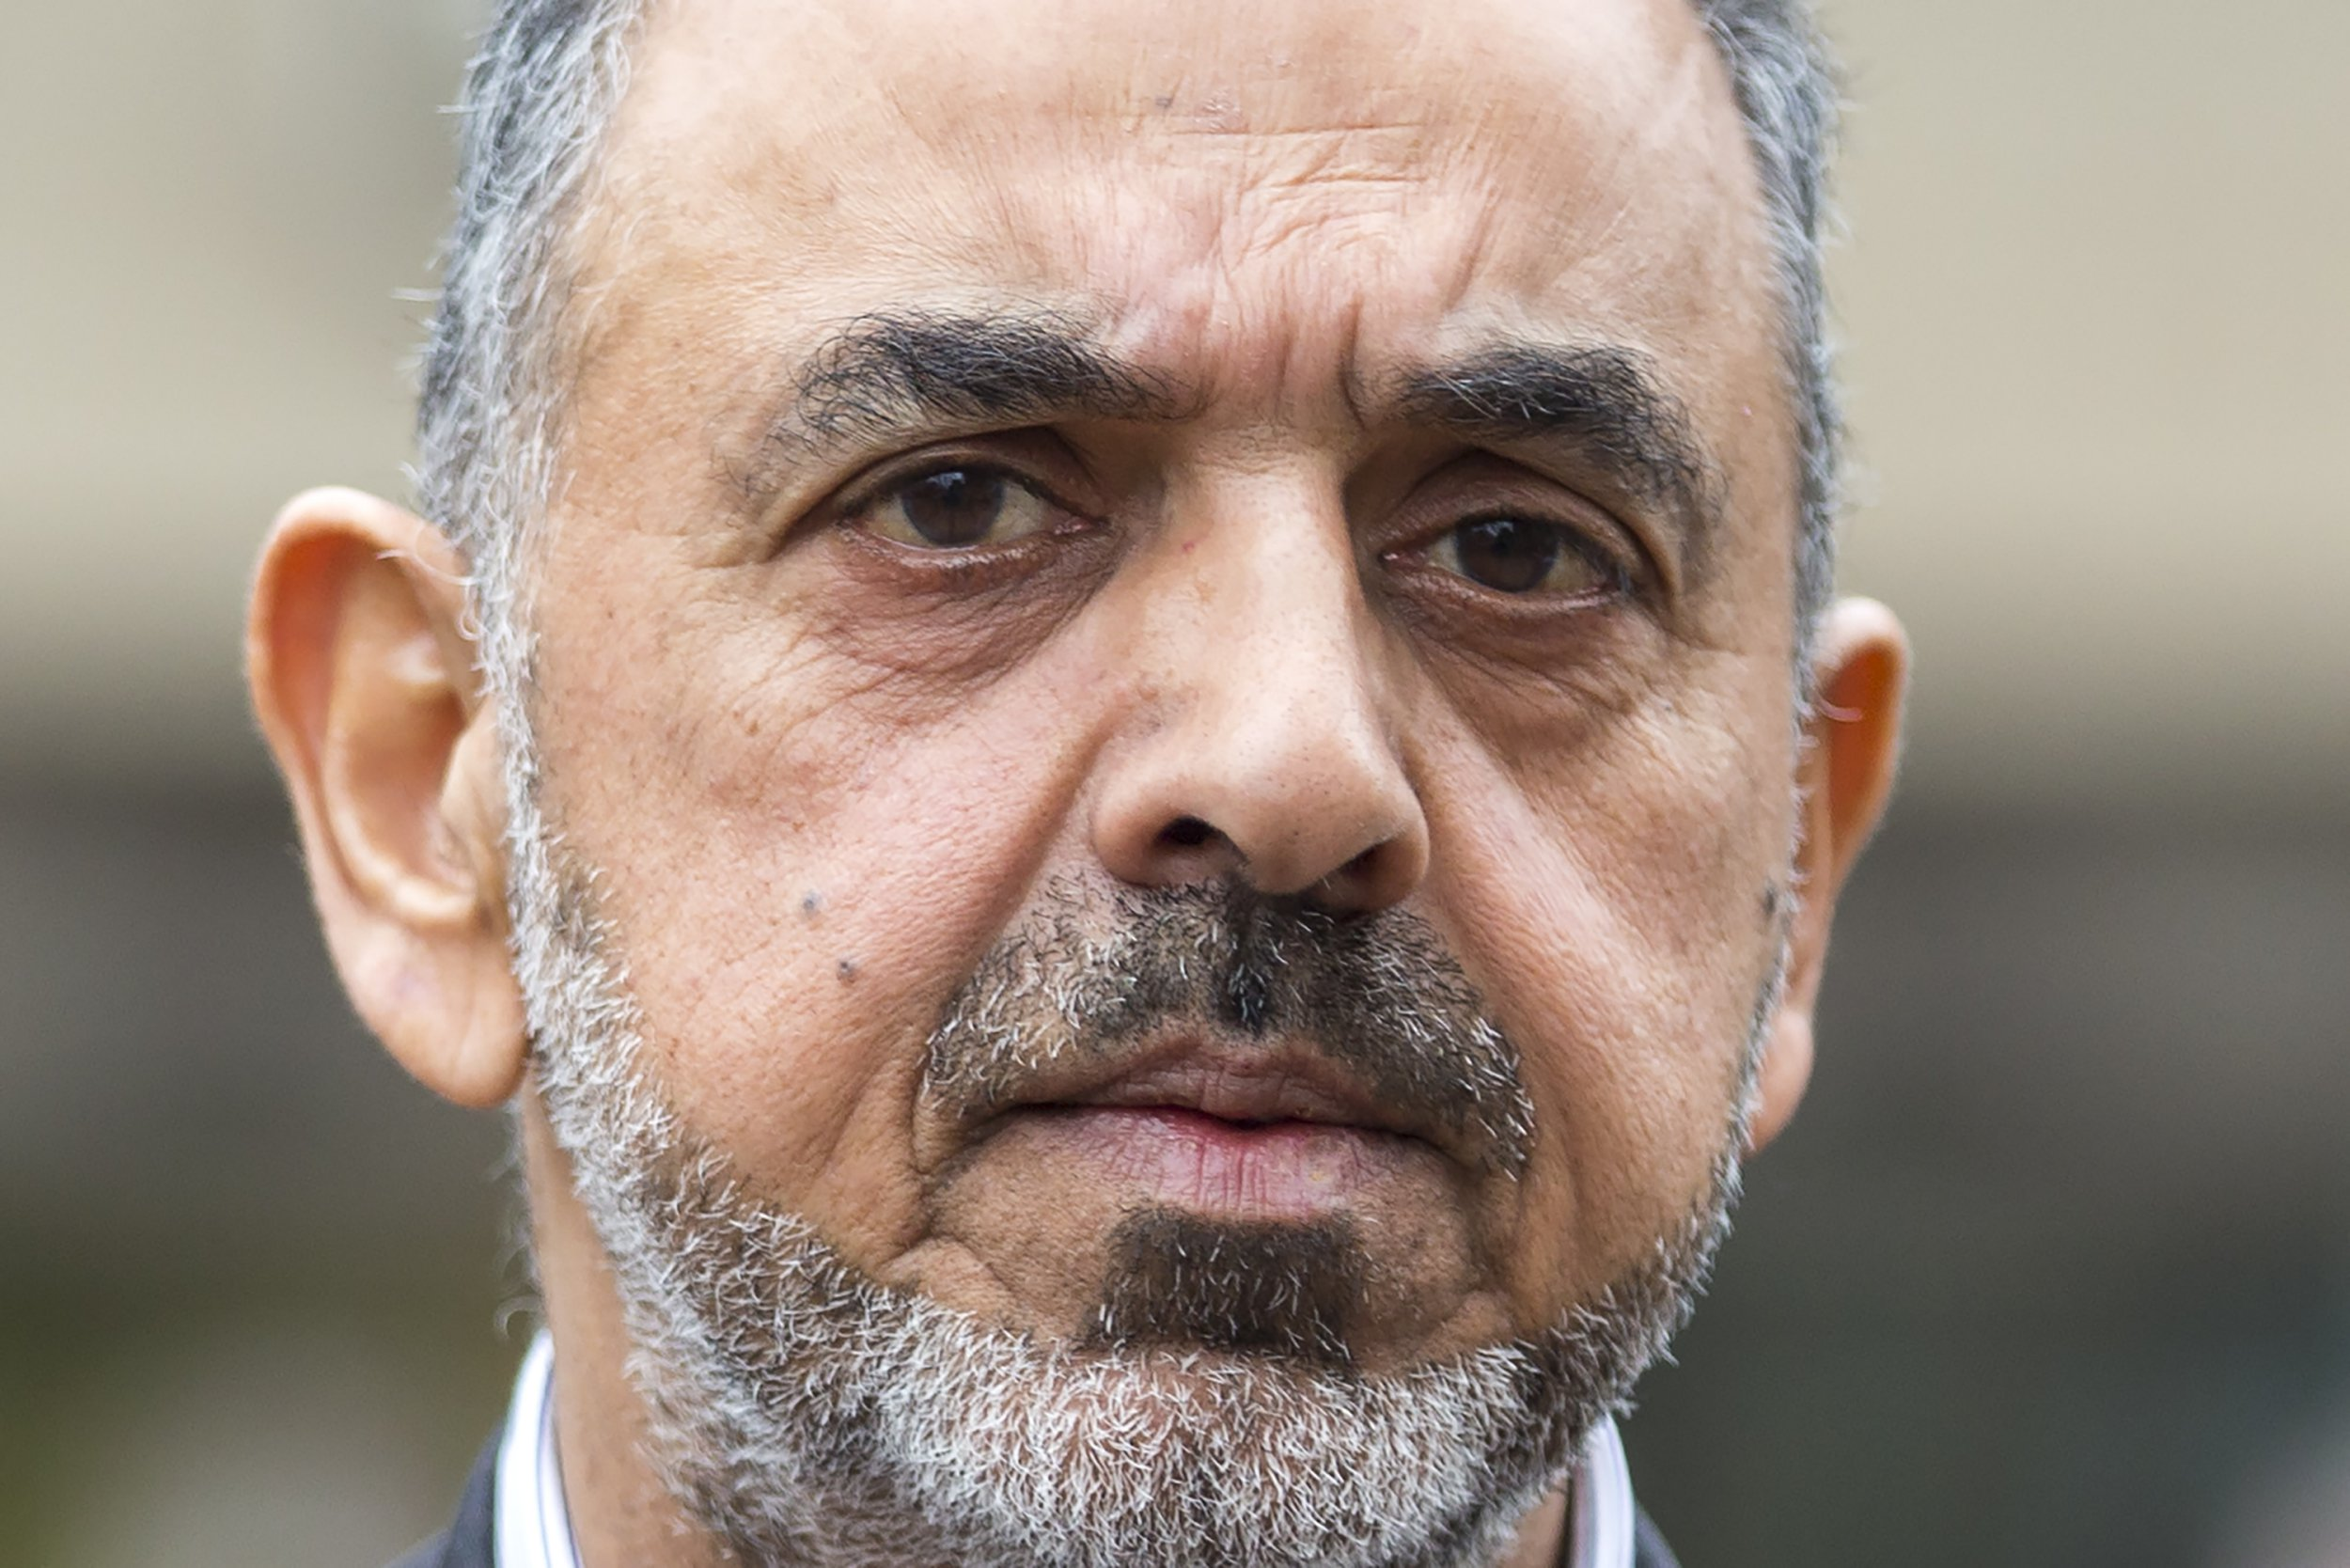 ? Licensed to London News Pictures. 19/03/2019. Sheffield UK. Lord Nazir Ahmed of Rotherham leaving Sheffield Magistrates court this morning. Lord Ahmed has been charged with two counts of attempting to rape a girl, the former Labour peer is also charged with indecent assault of a boy under 13. It is alleged the offences took place between 1971 and 1974, when Lord Ahmed would have been aged between 14 and 17. Two other men, Mohammed Farouq, 68, and Mohammed Tariq, 63, both from Rotherham, have also been charged. Photo credit: Andrew McCaren/LNP